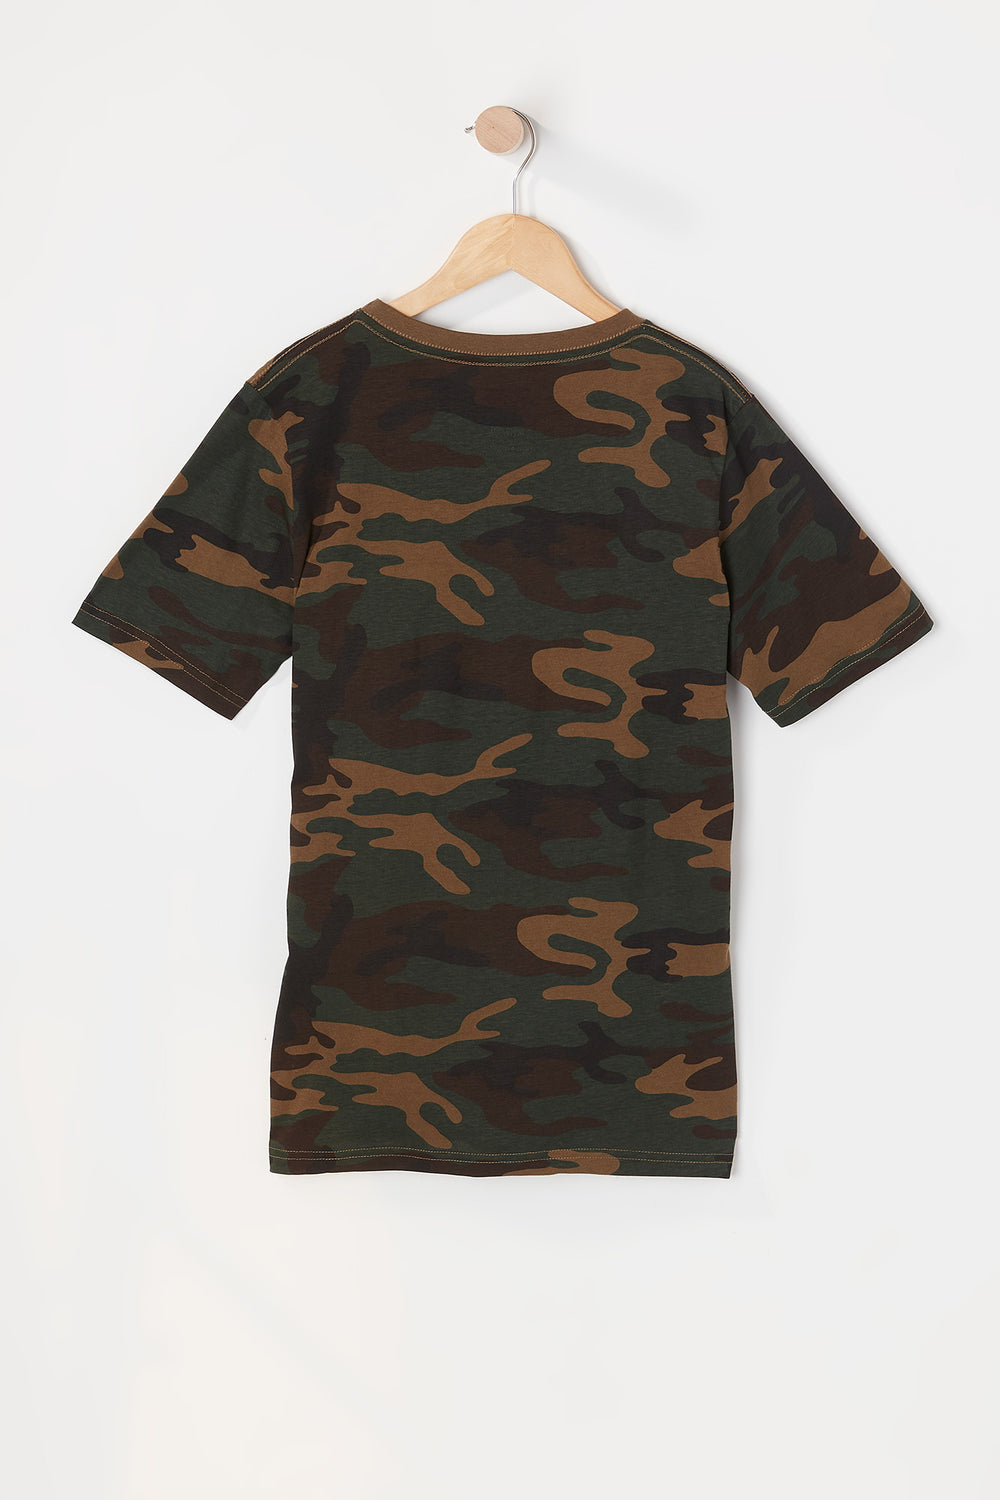 Zoo York Youth Camo T-Shirt Camouflage